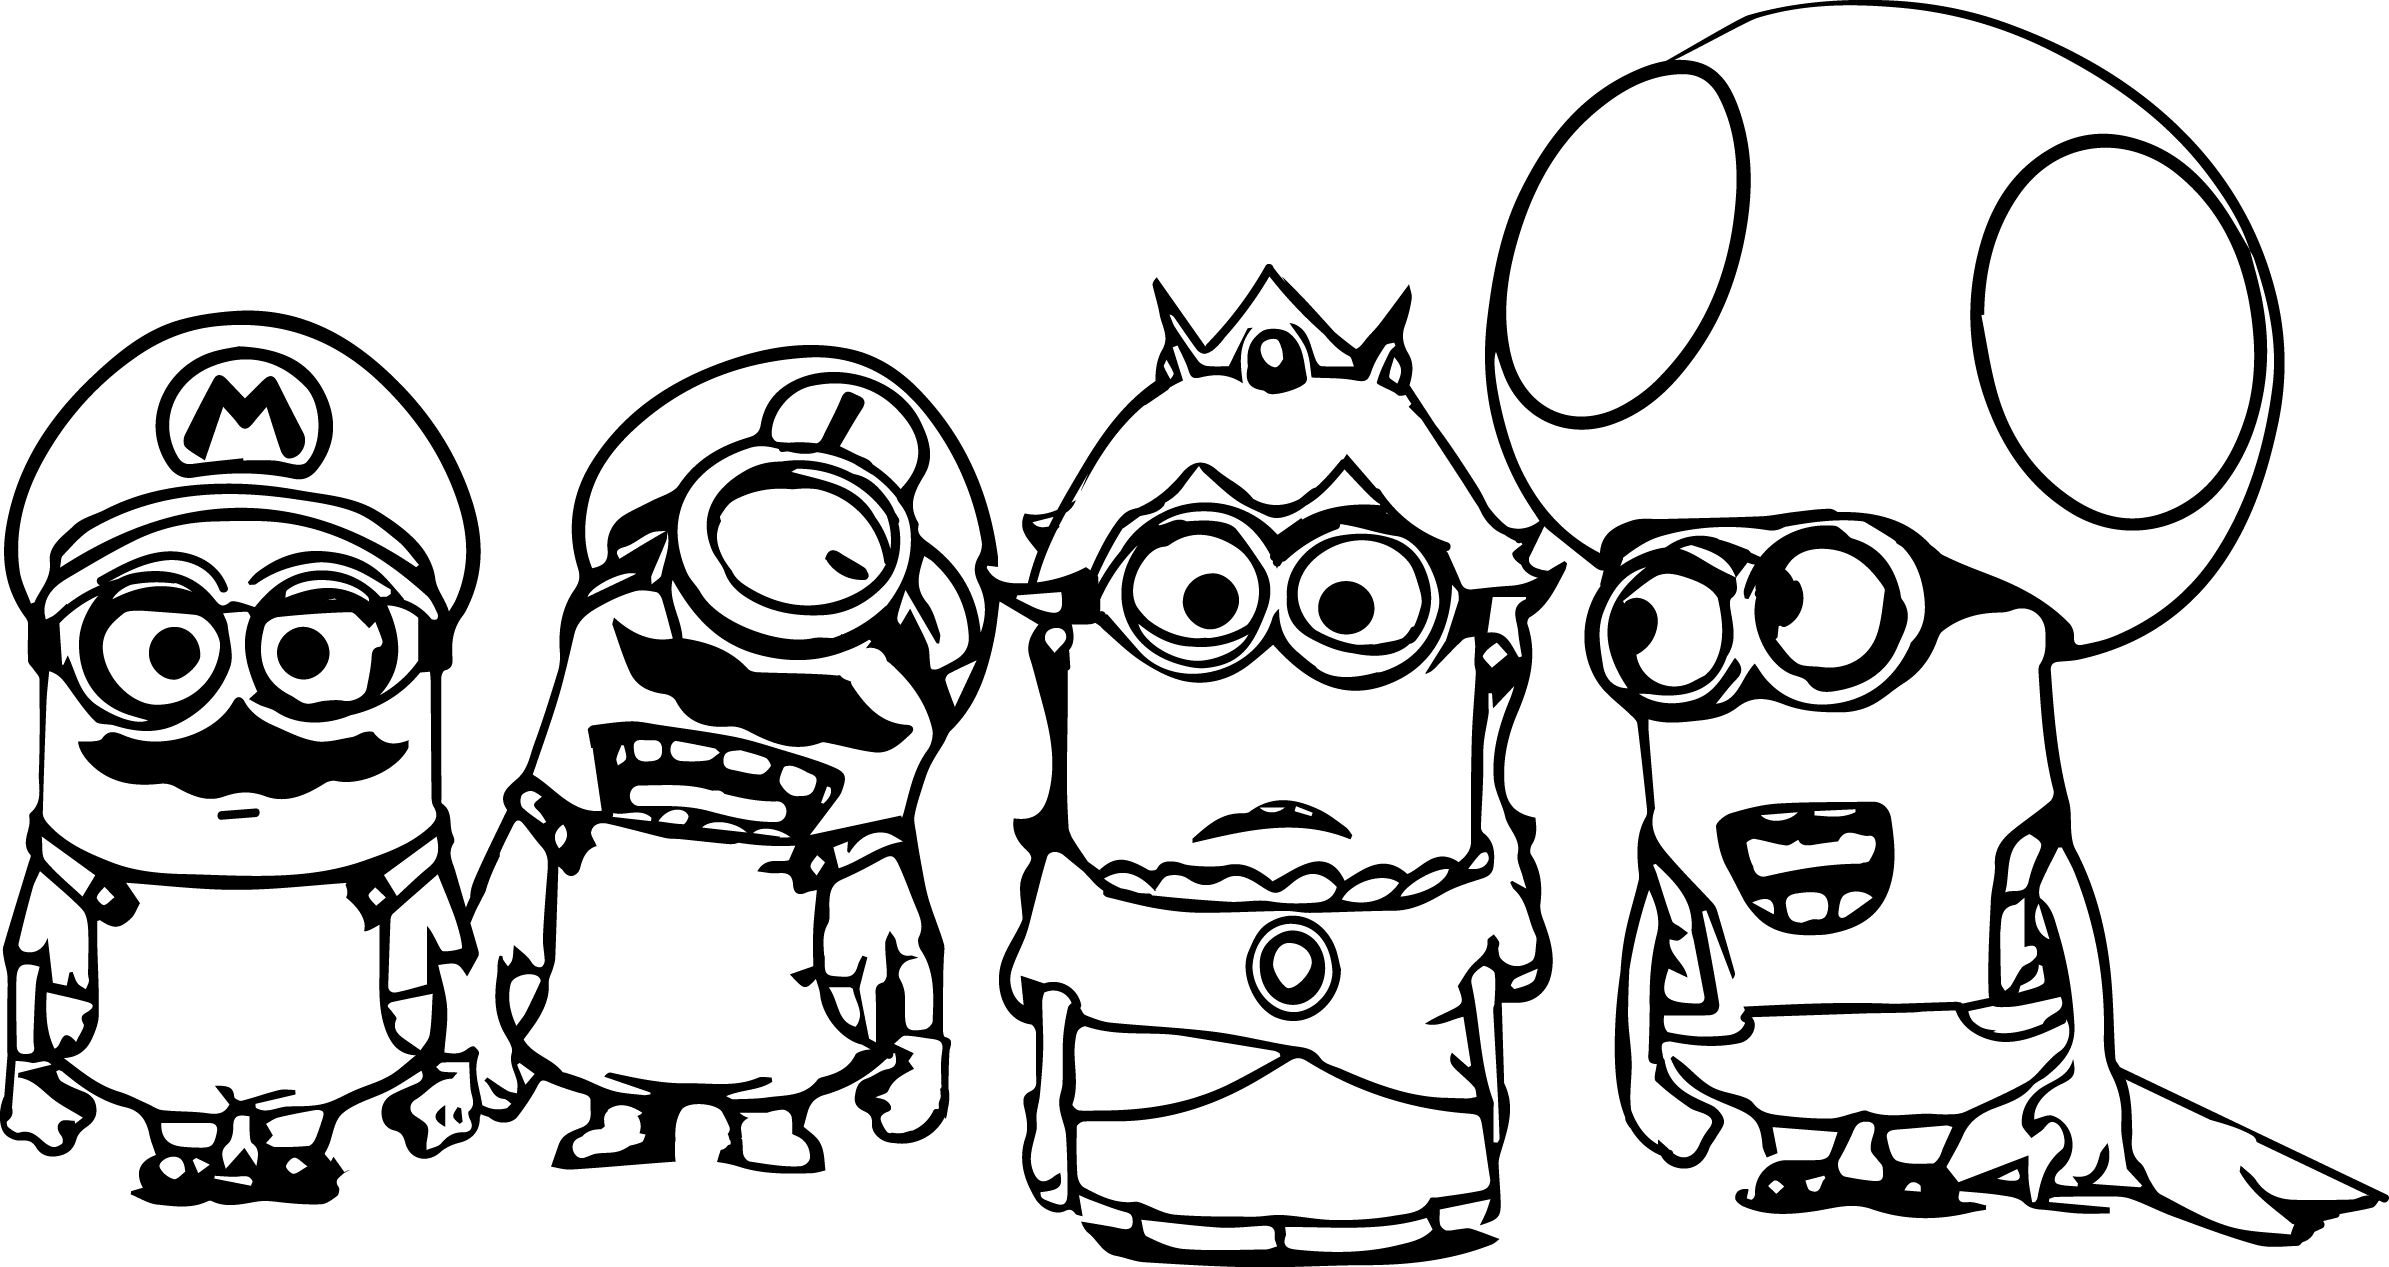 free minion coloring pages minion coloring pages best coloring pages for kids coloring free minion pages